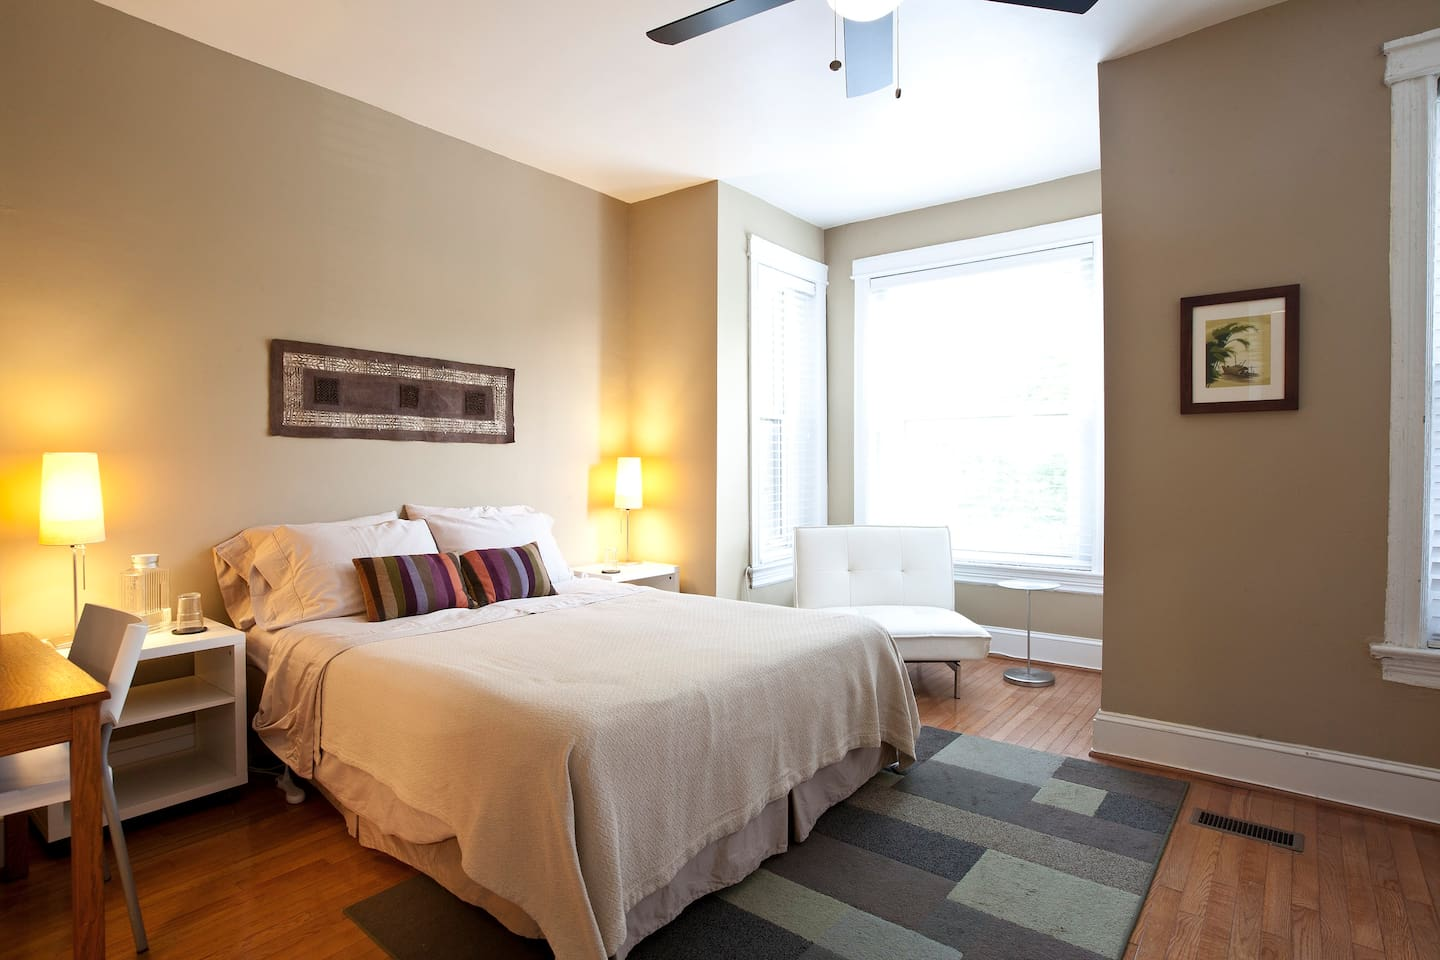 We think this is the nicest bedroom in the house, and our guests love it.